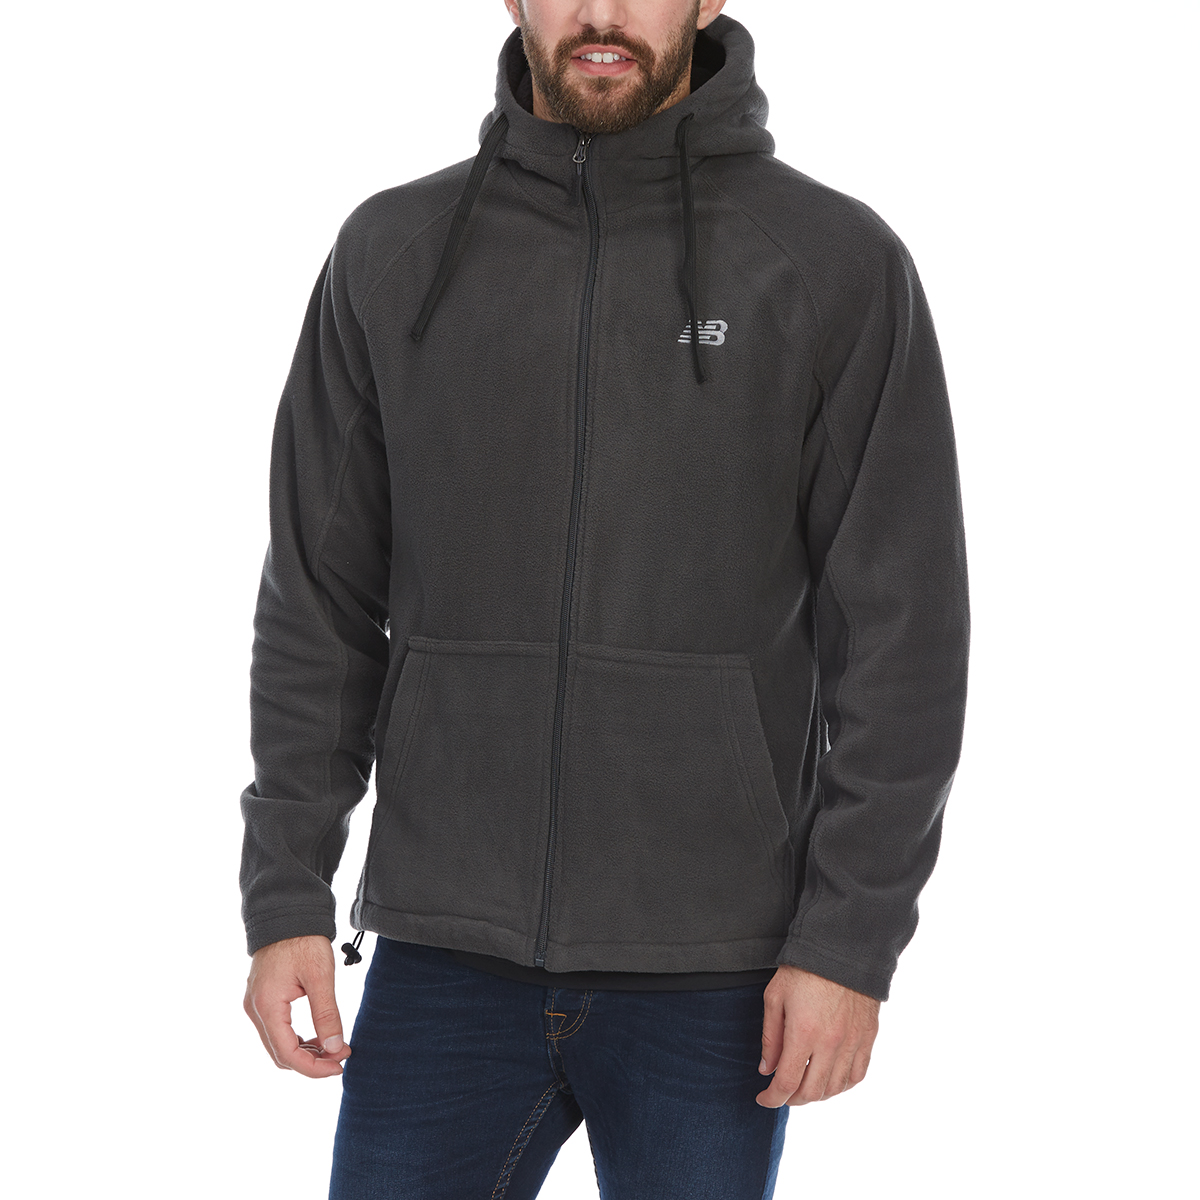 New Balance Men's Sherpa-Lined Polar Fleece Full-Zip Hoodie - Black, XXL